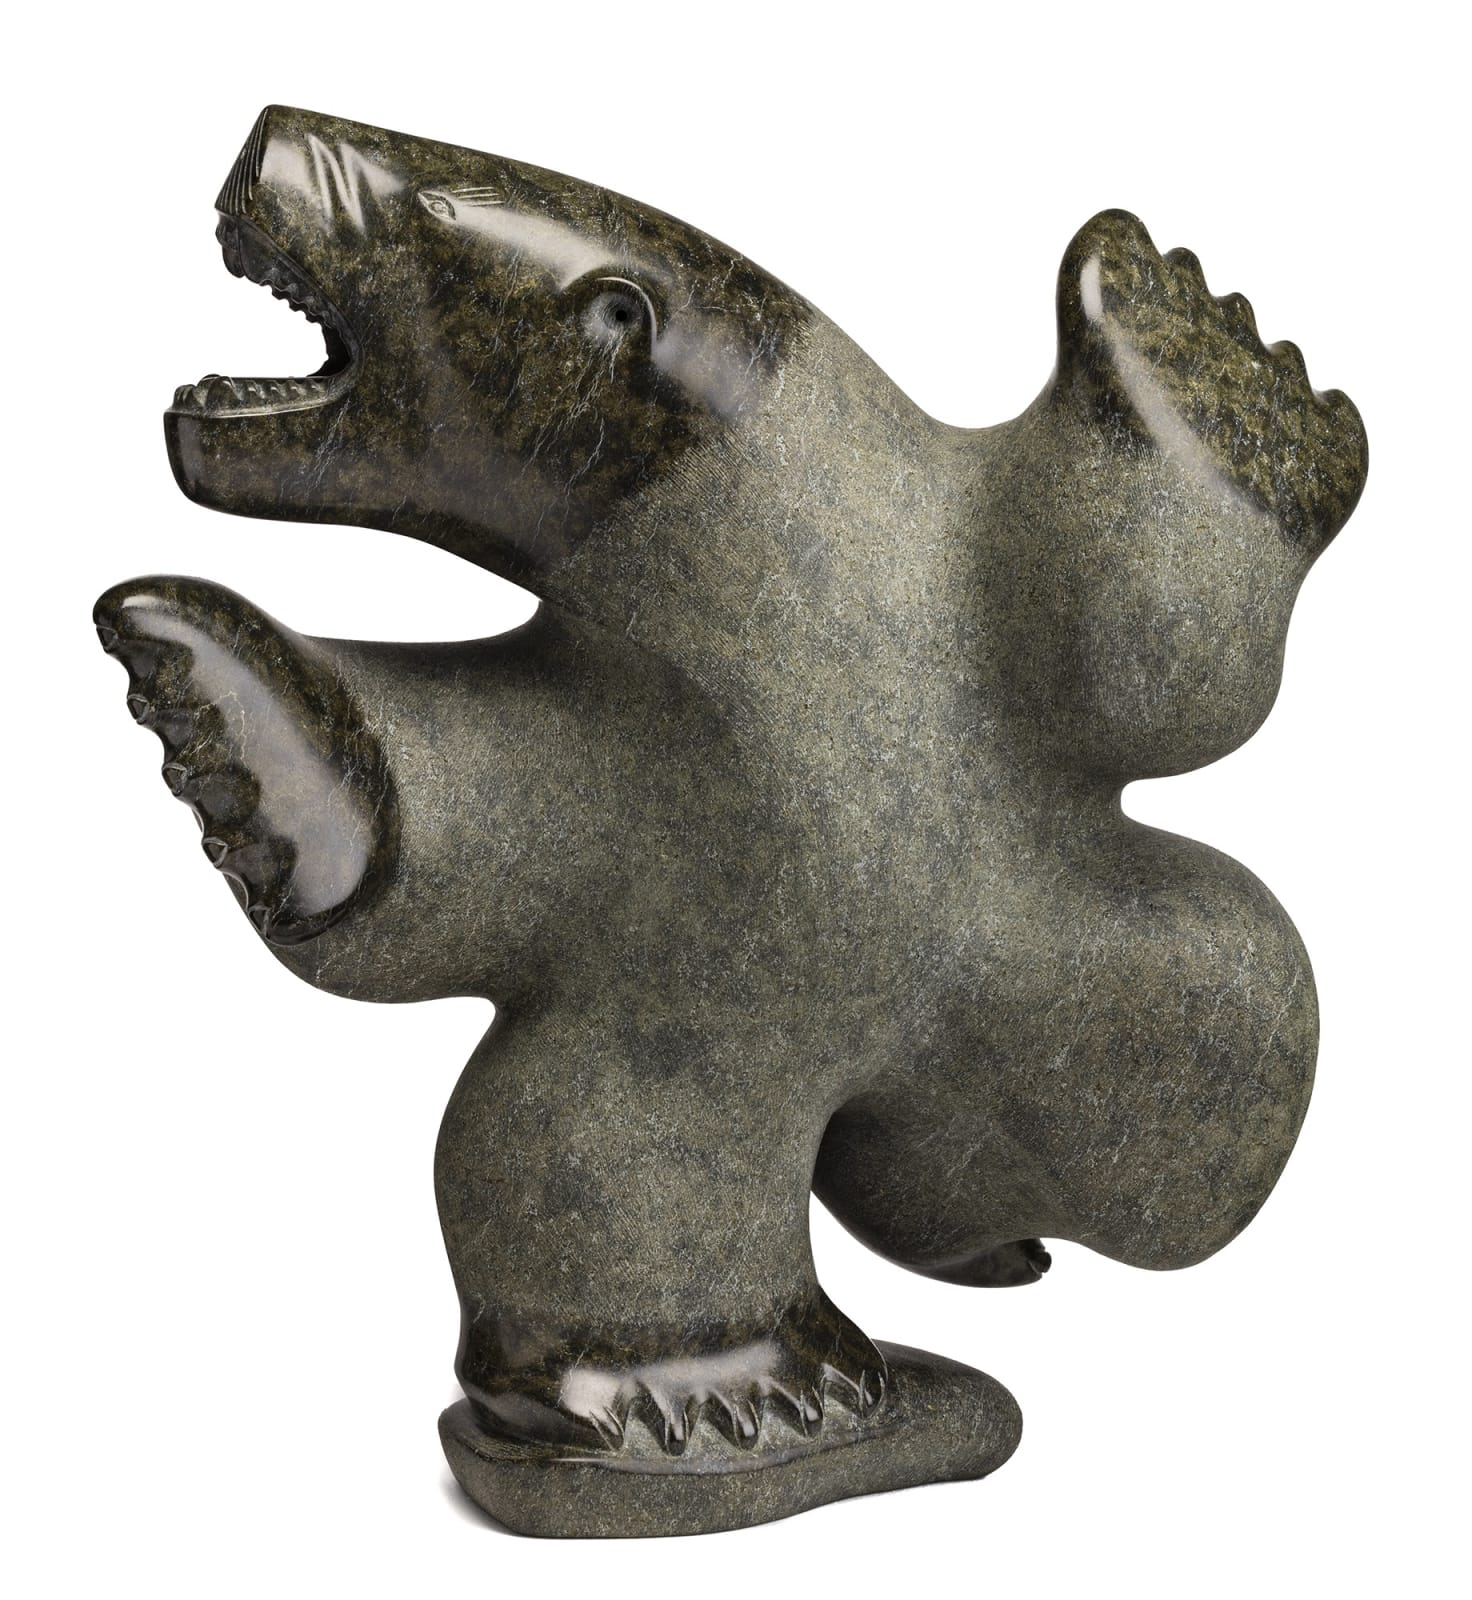 Lot 99 NALENIK TEMELA (1939-2003), m., KIMMIRUT (LAKE HARBOUR) Dancing Bear, 1989 stone, 24 x 22 x 10 in (61 x 55.9 x 25.4 cm) Estimate: $20,000⁠⁠⁠— $30,000